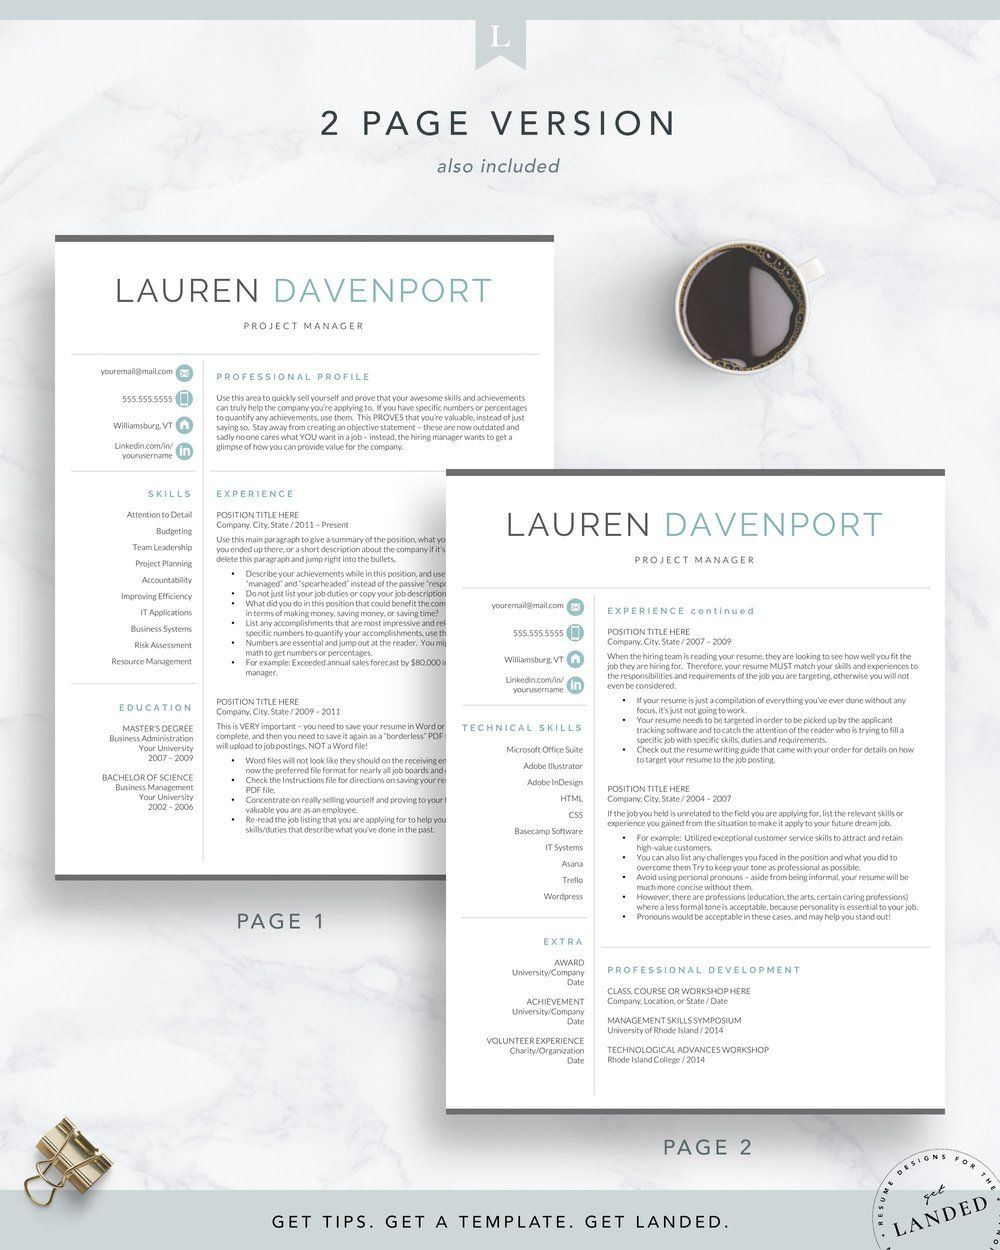 Pin on Templates for LinkedIn